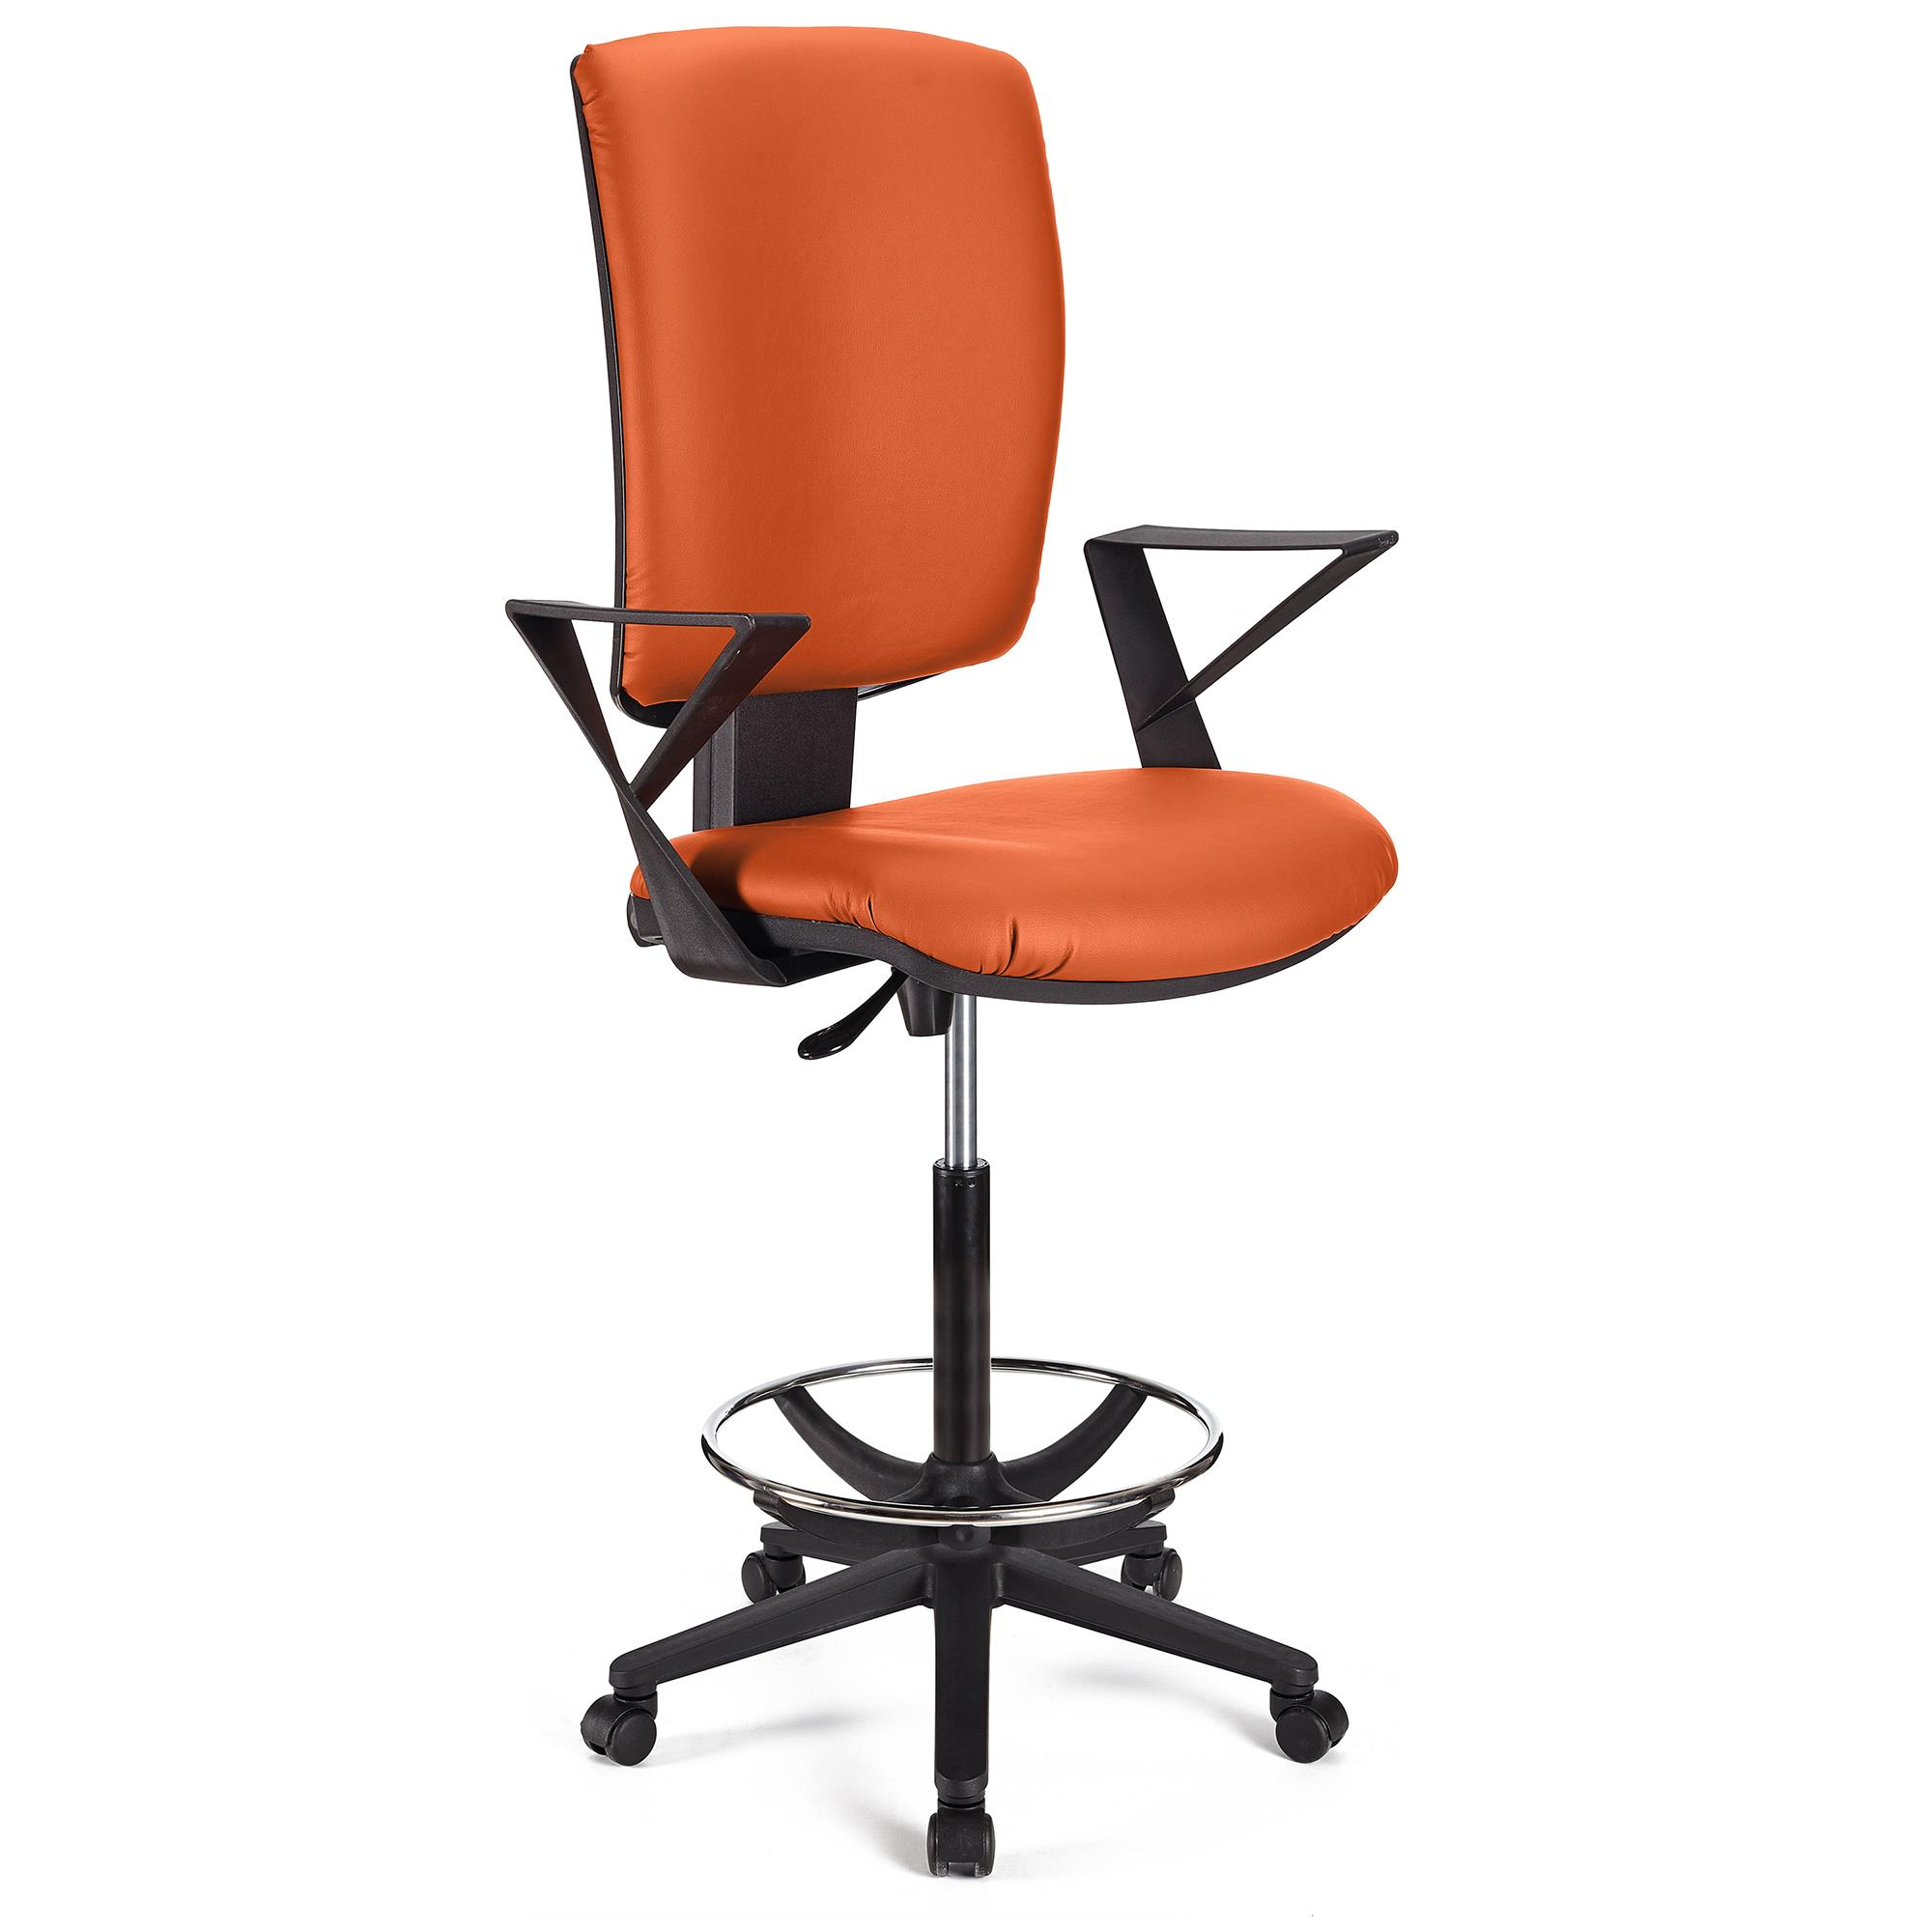 Tabouret de Bureau ATLAS CUIR, Dossier Ajustable, Grand Rembourrage, Orange